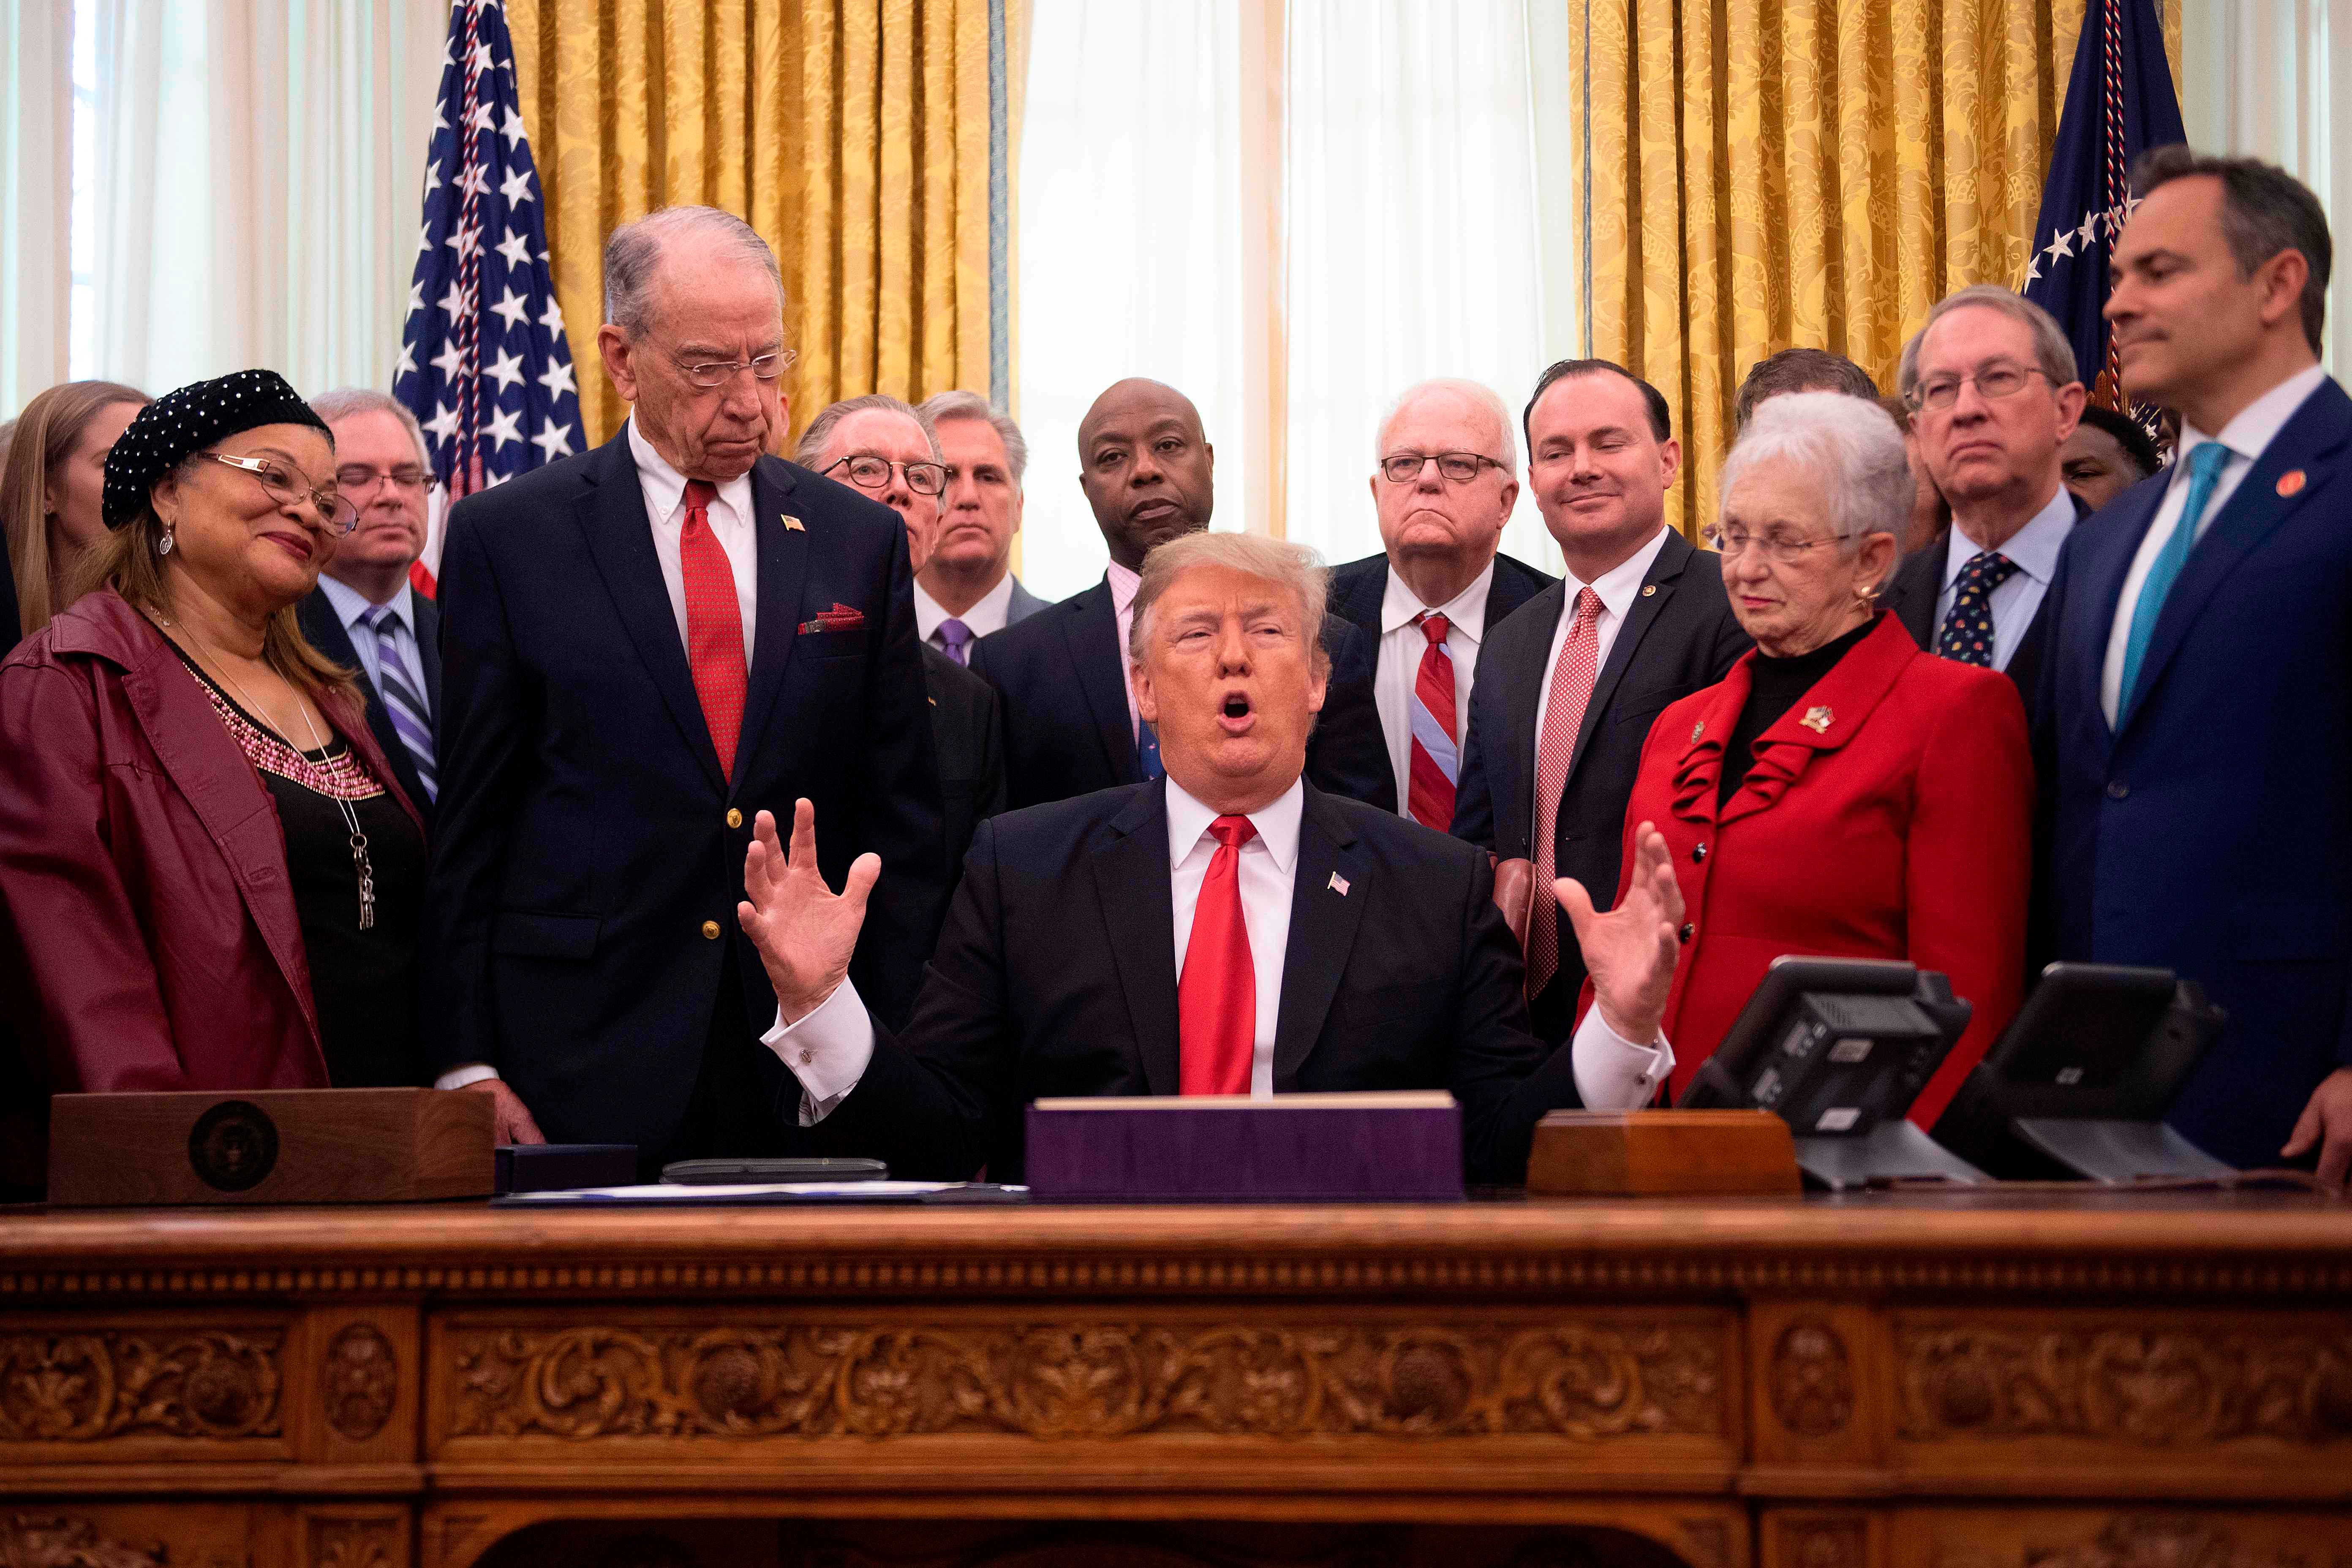 President Donald Trump speaks before signing the First Step Act and the Juvenile Justice Reform Act at the White House in Washington, DC, on December 21, 2018.